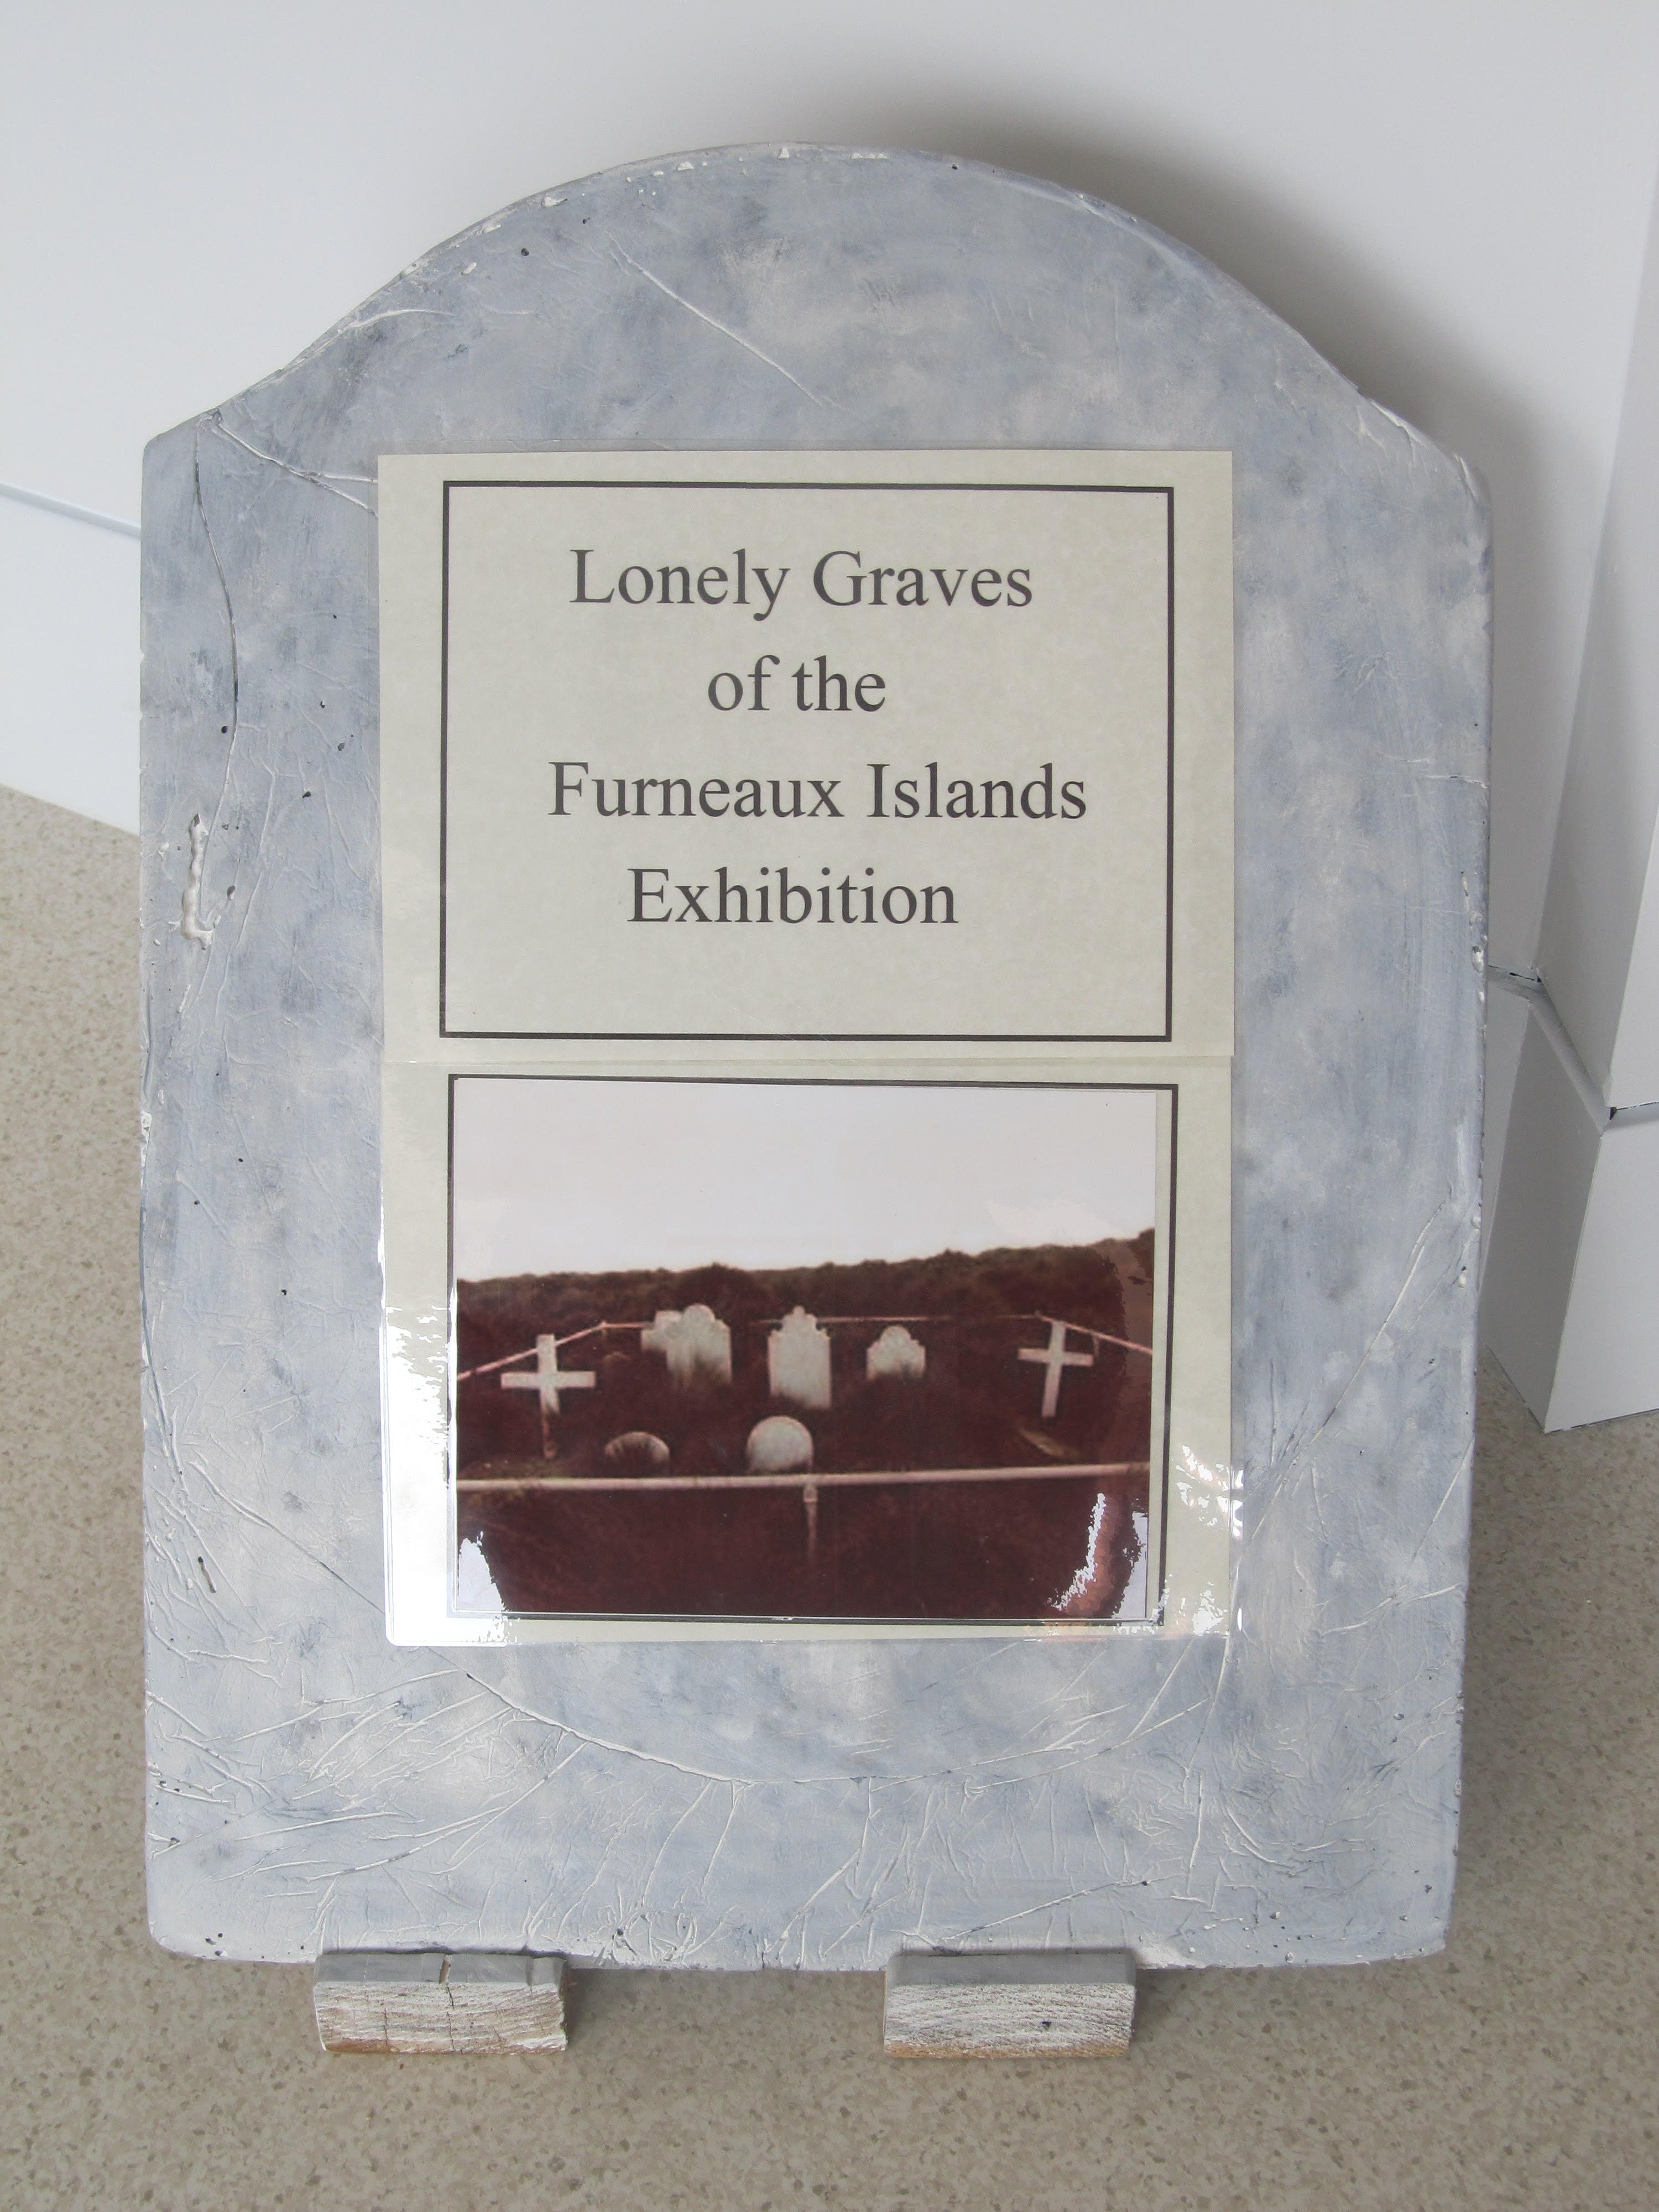 Lonely Graves of the Furneaux Islands Exhibition - SA Accommodation